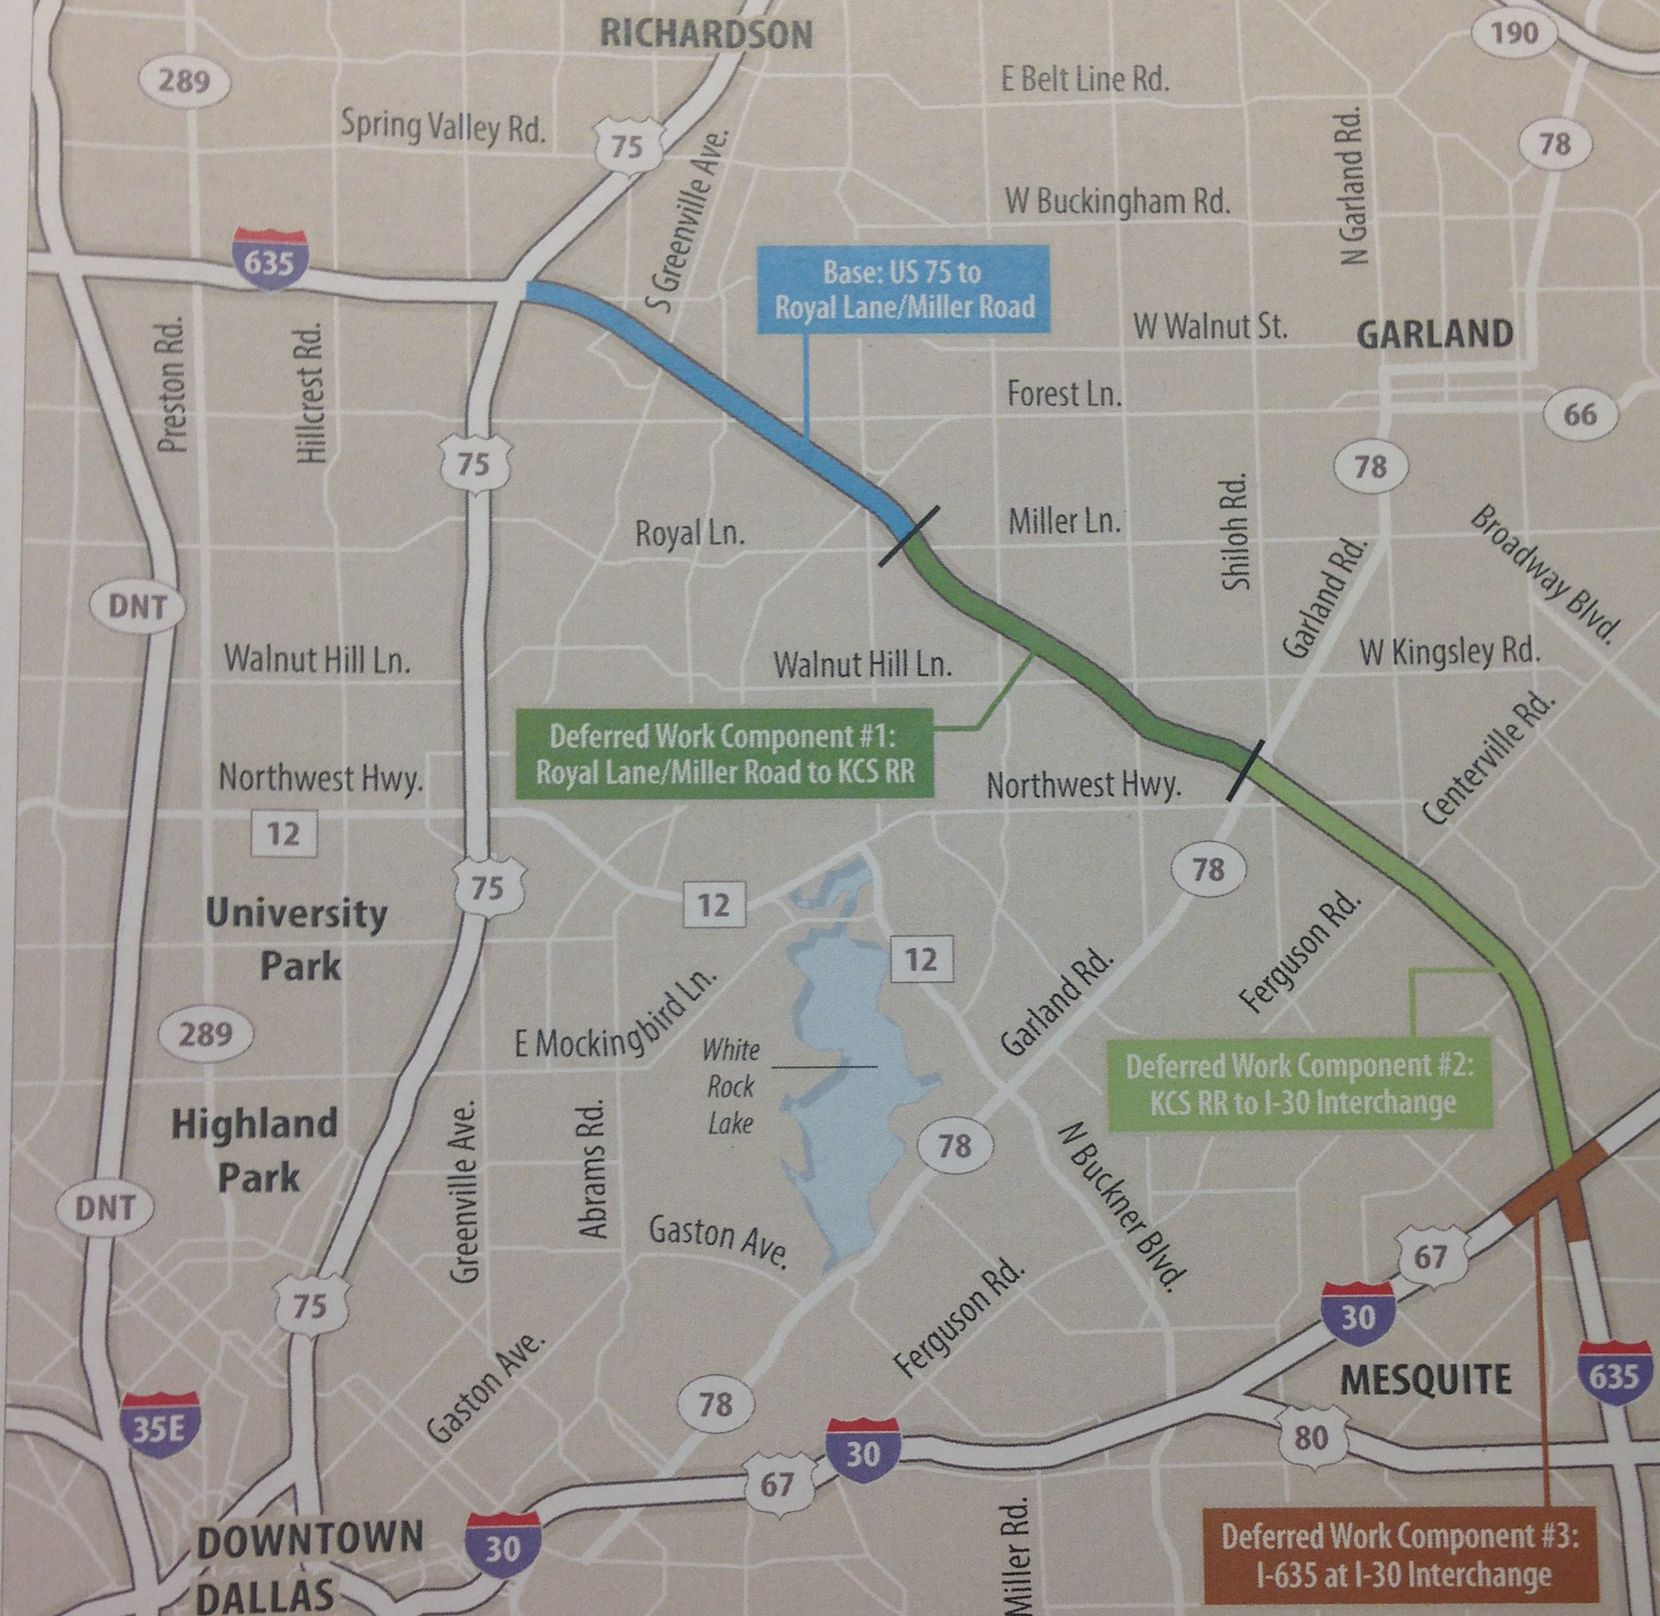 If funding is approved, the section of LBJ Freeway between Central Expressway and Royal Lane/Miller Road would be built from 2019-mid 2022, the section south to near State Highway 78 (Garland Road) would be built form 2021-23, the section farthest south to Interstate 30 would be built from 2023 to mid-2026 and the Interste 30 interchange would be rebuilt from 2025-27.